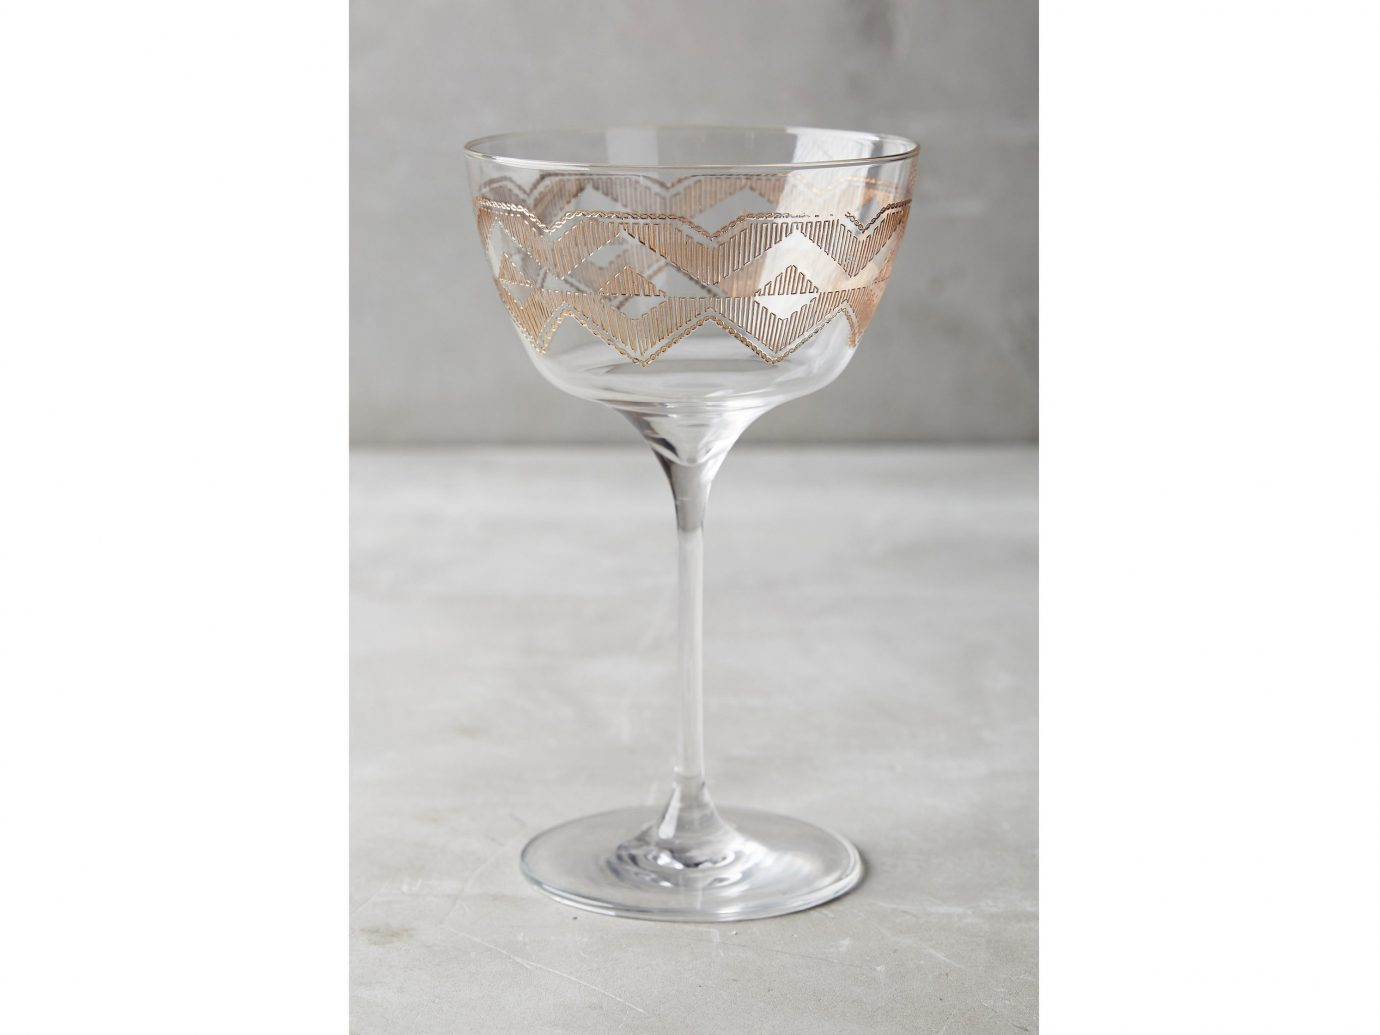 Style + Design container stemware wine glass champagne stemware martini glass drinkware glass tableware material champagne chalice